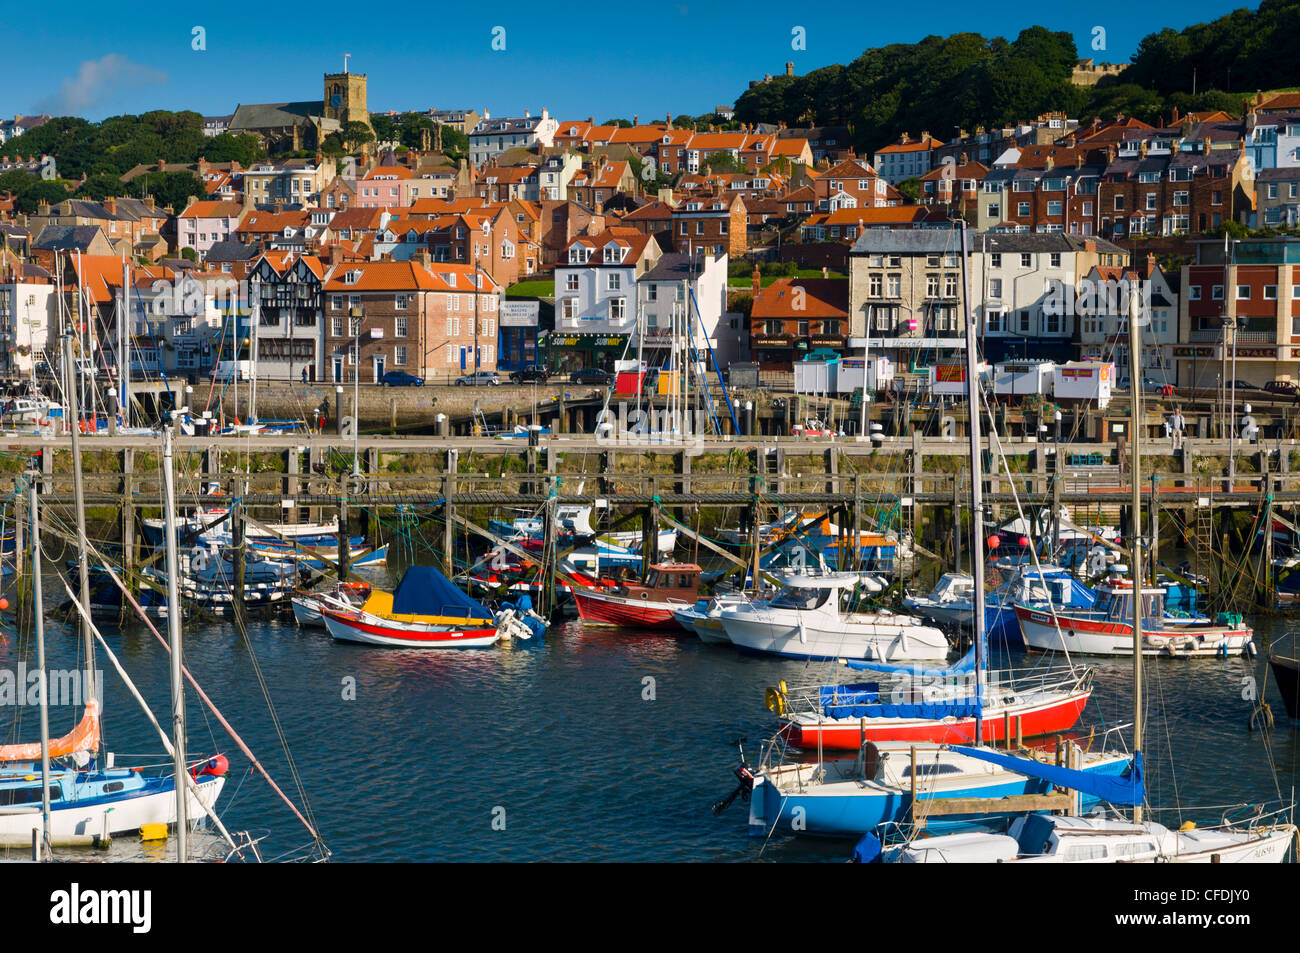 Scarborough, North Yorkshire, Yorkshire, England, United Kingdom, Europe - Stock Image